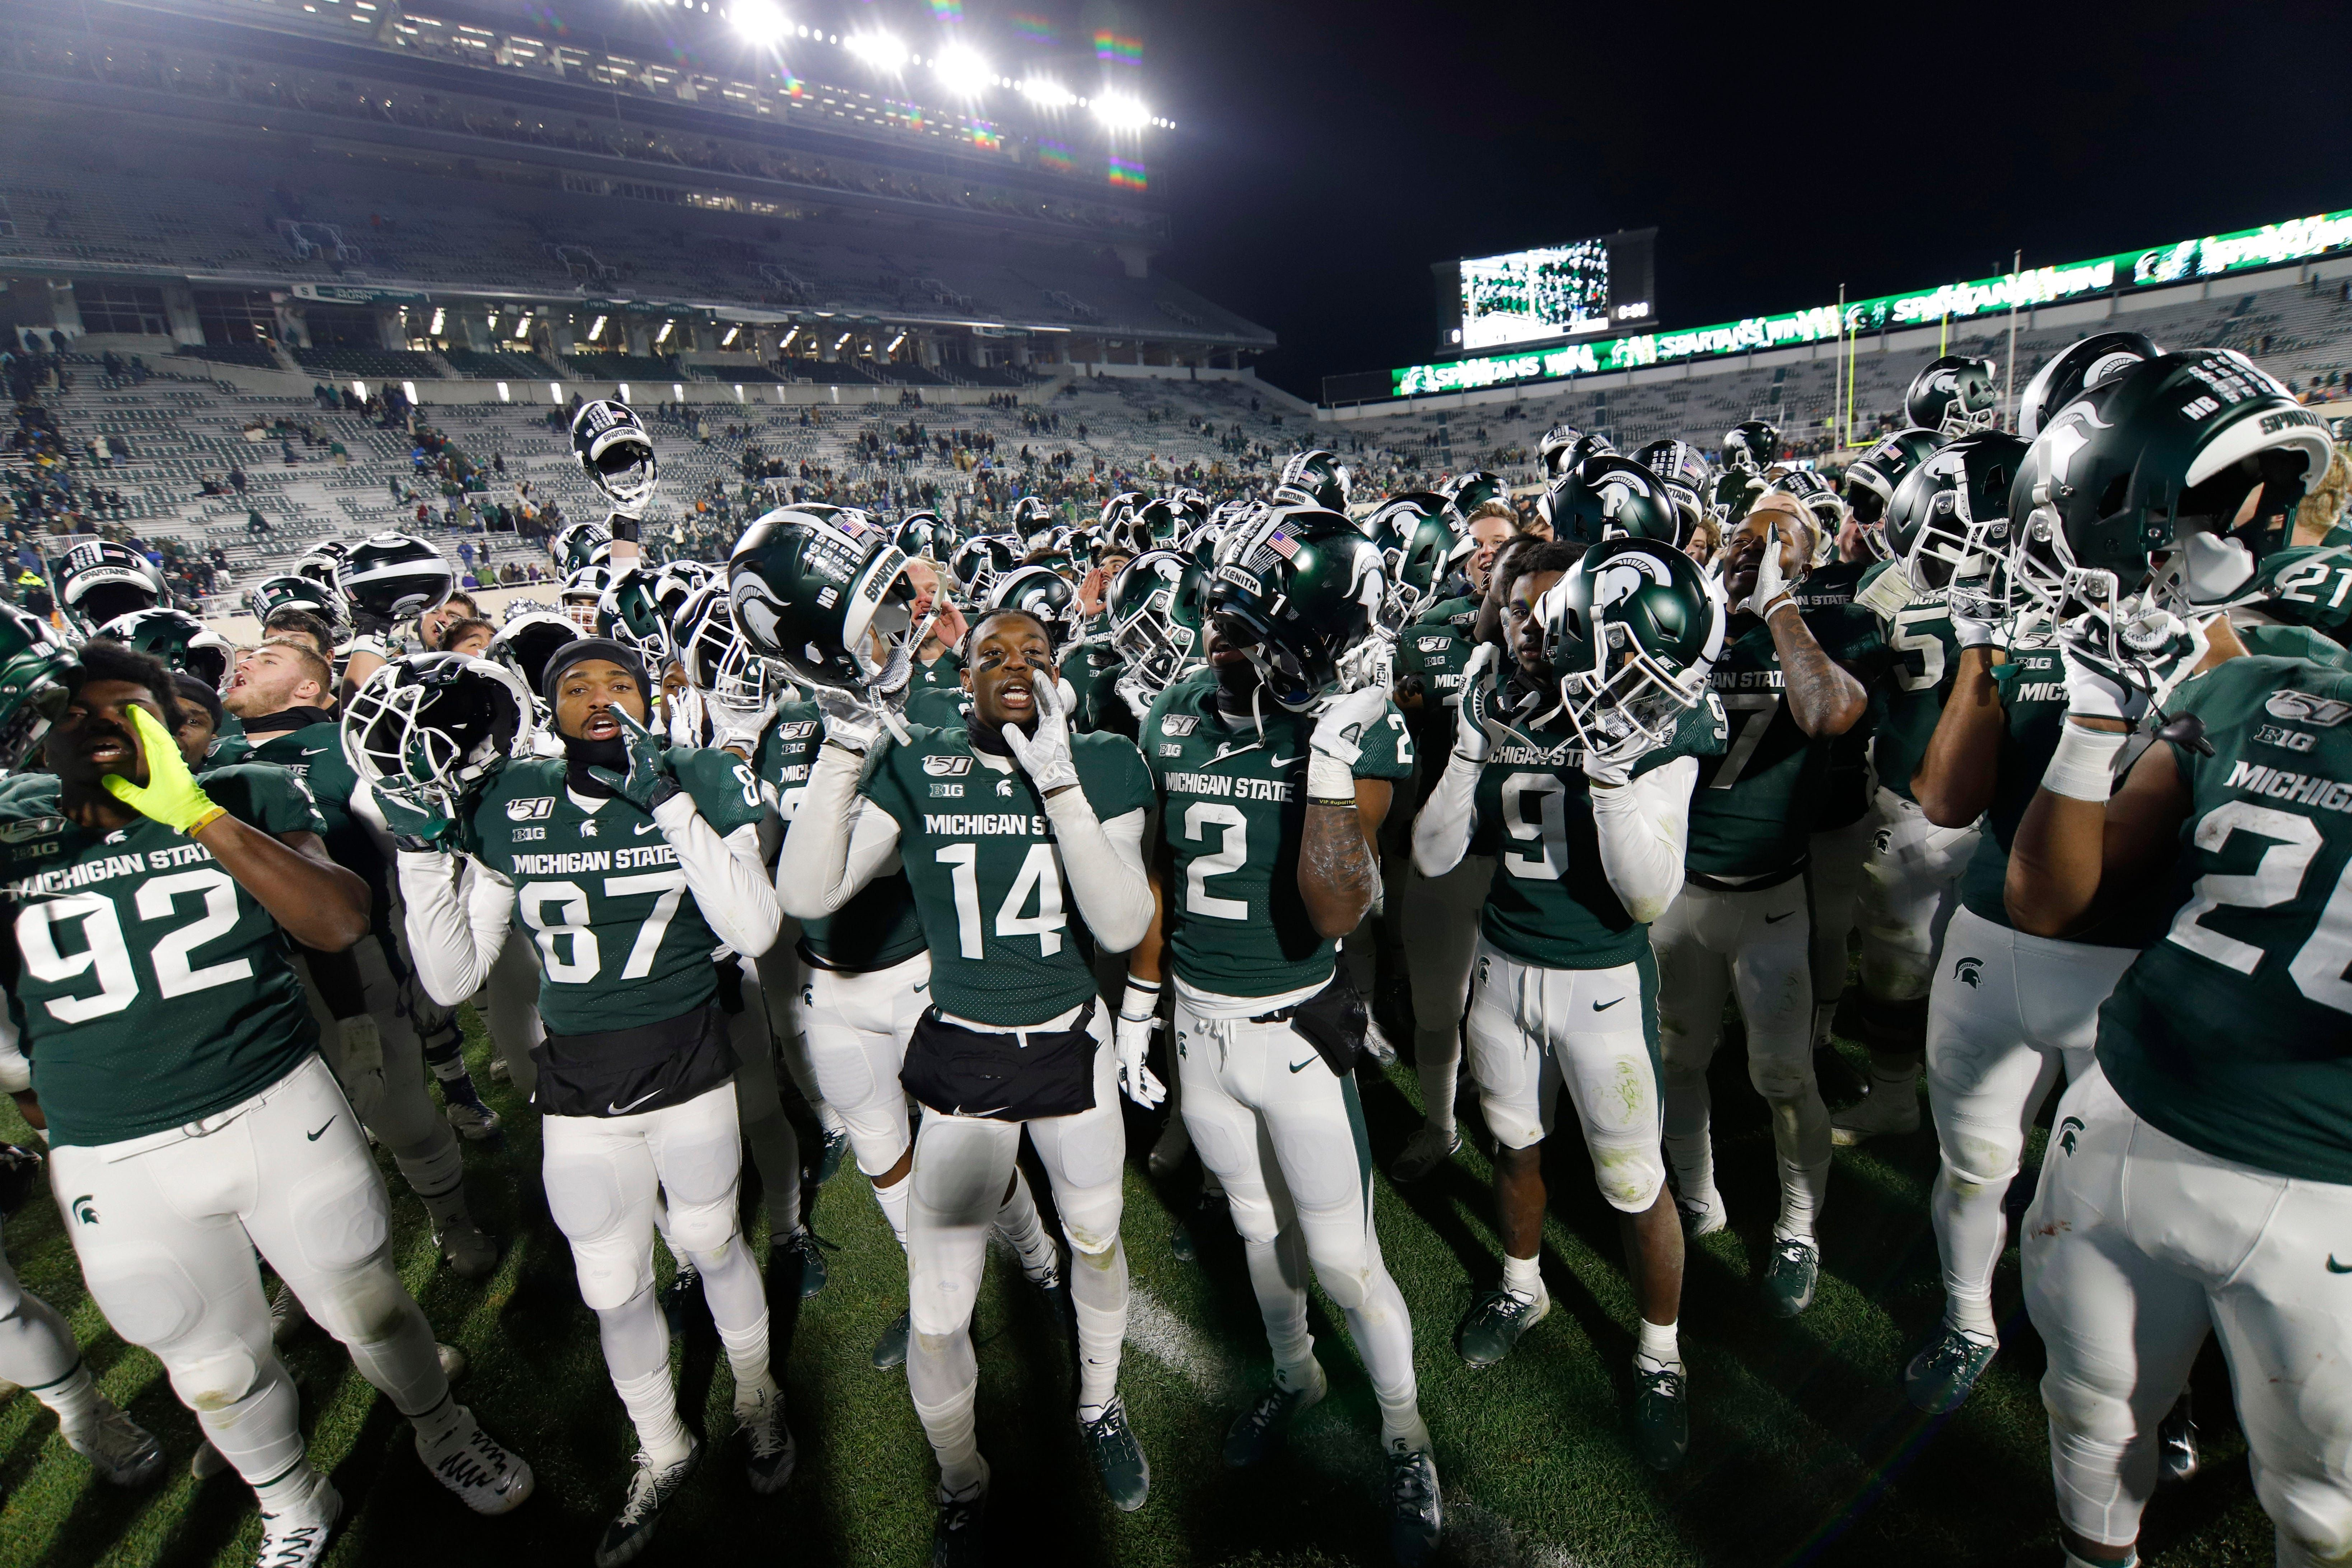 Michigan State Football S Expectations Reduced To Two Humbling